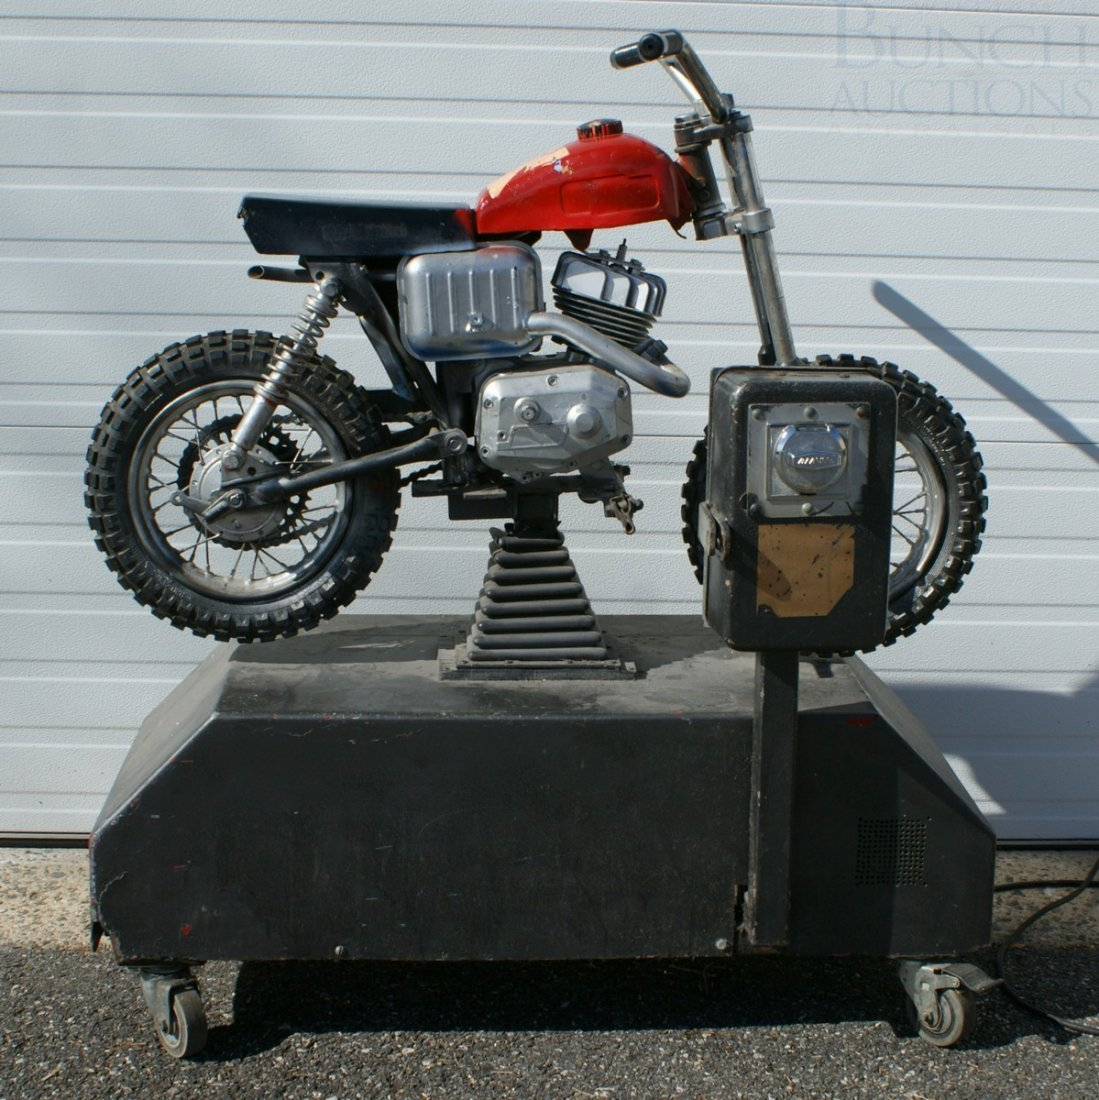 11: Italjet mini bike converted and mounted as a coin o